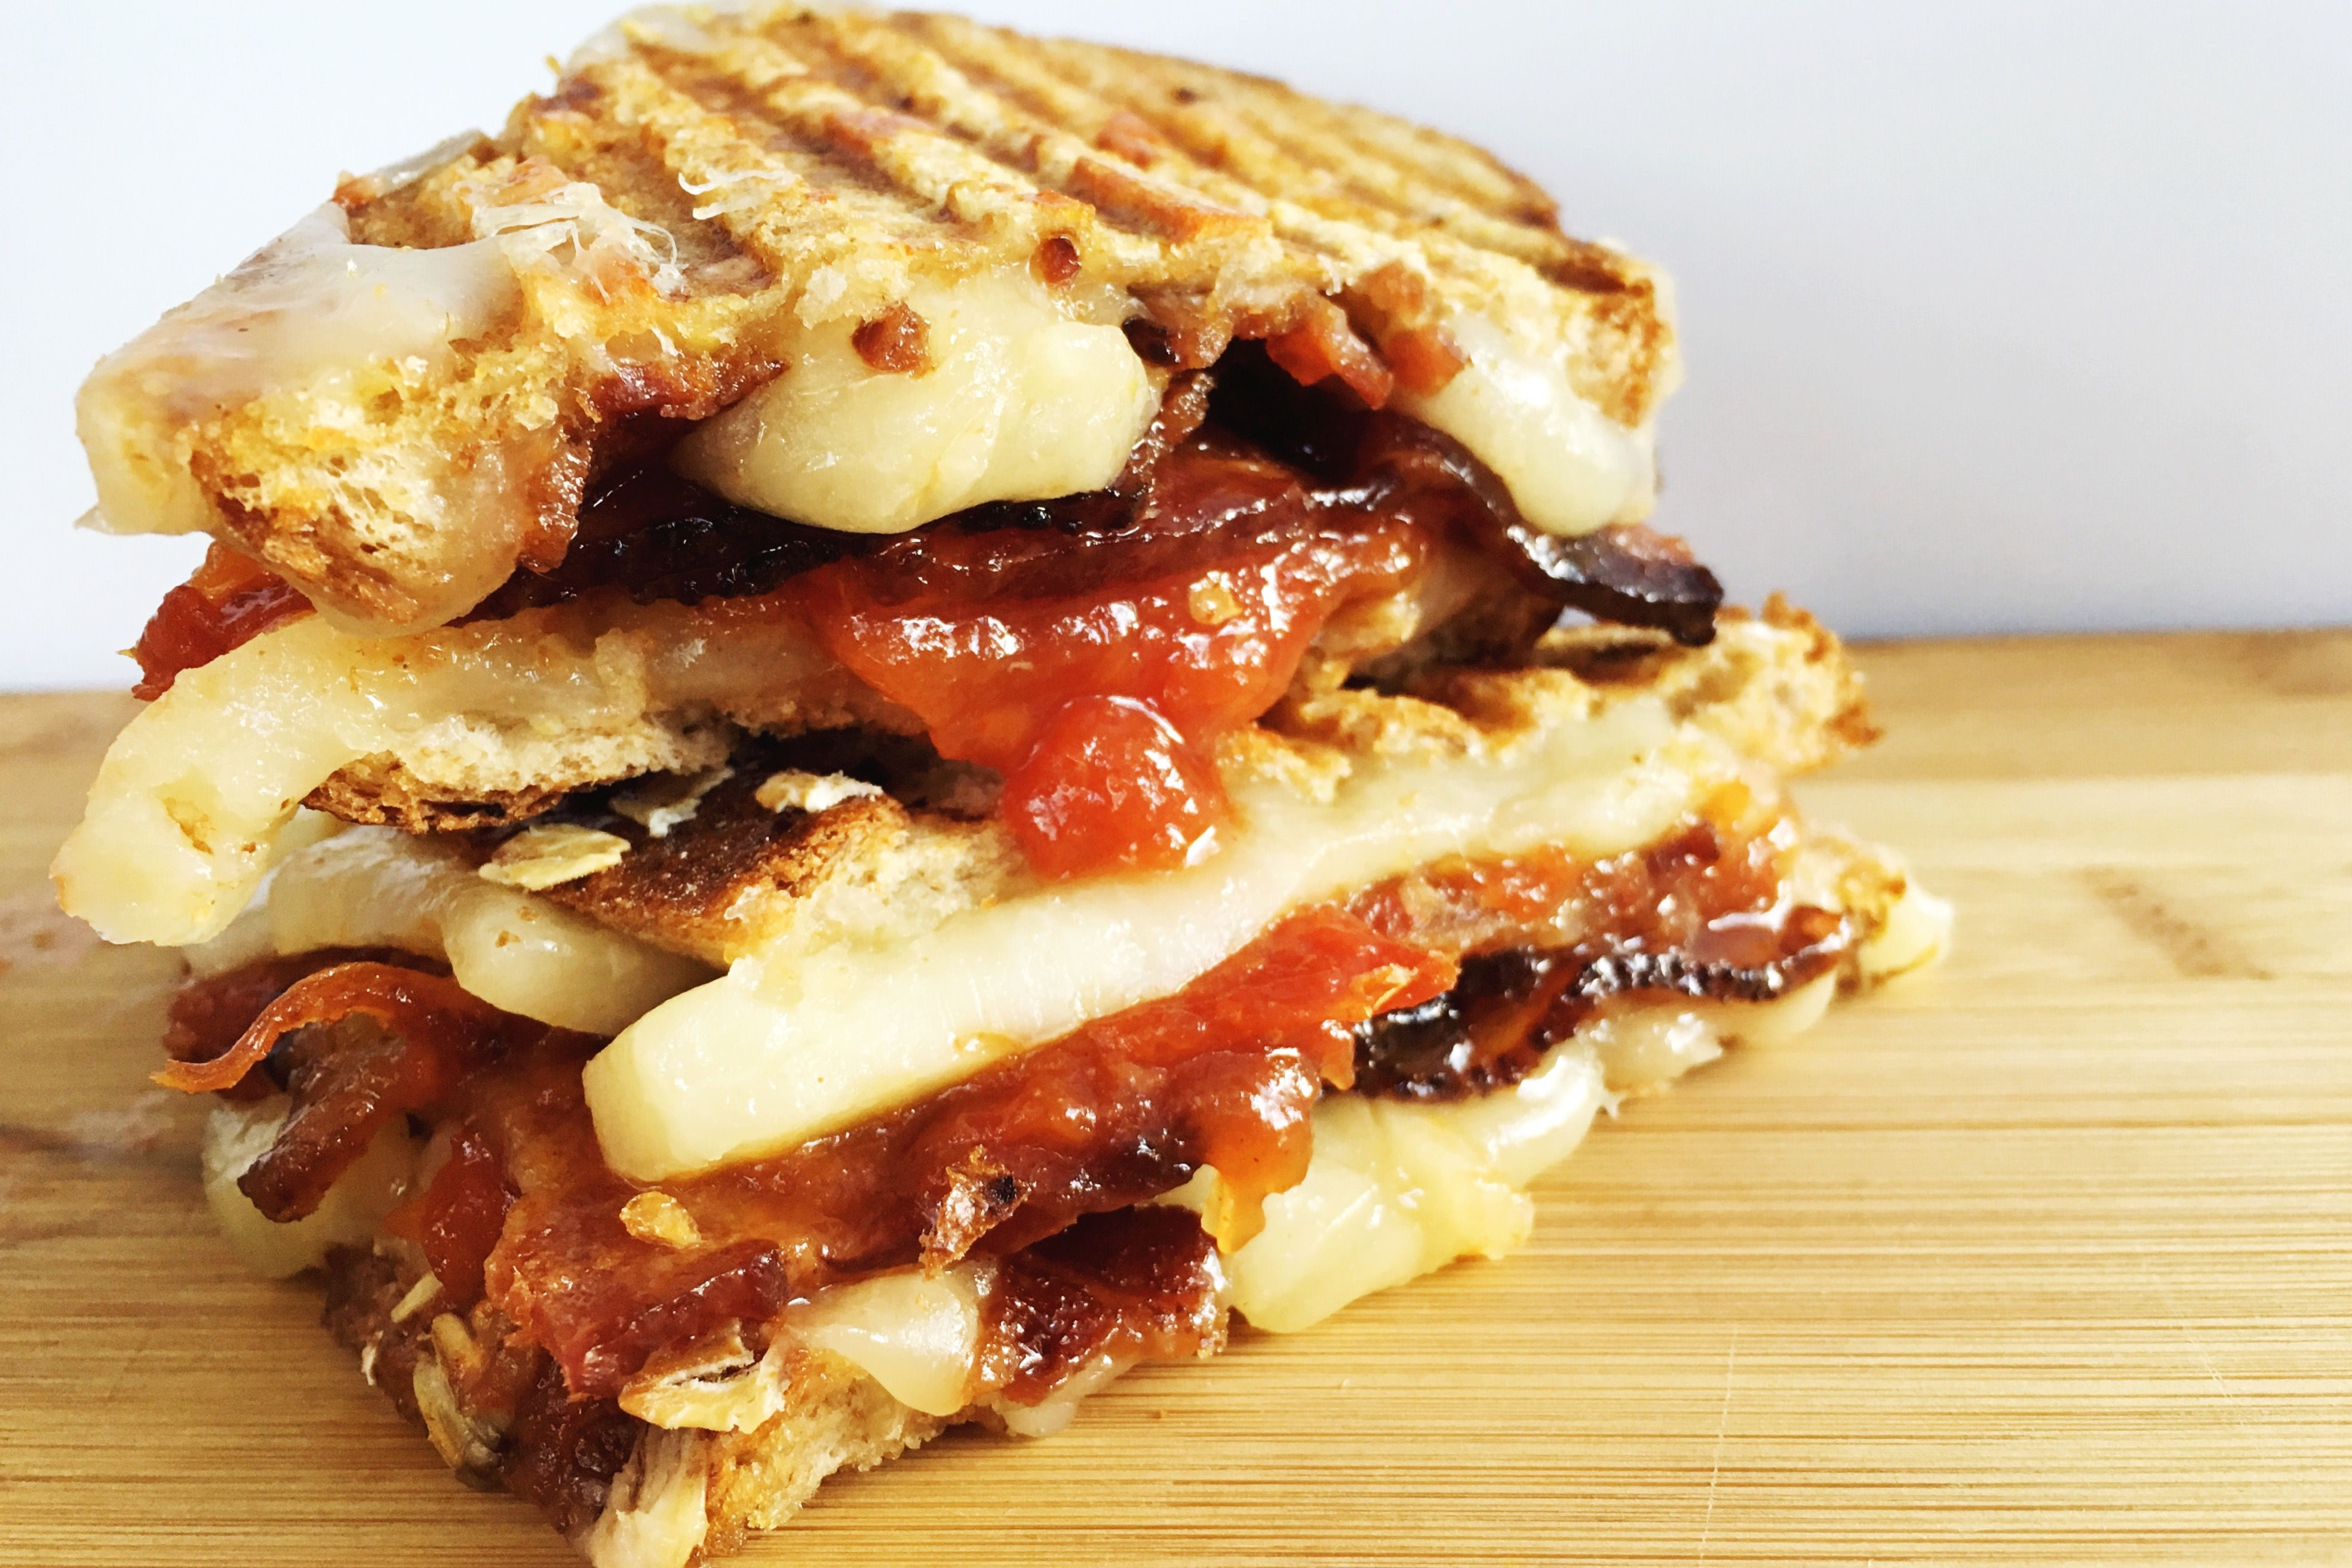 Tomato Jam and Bacon Grilled Cheese